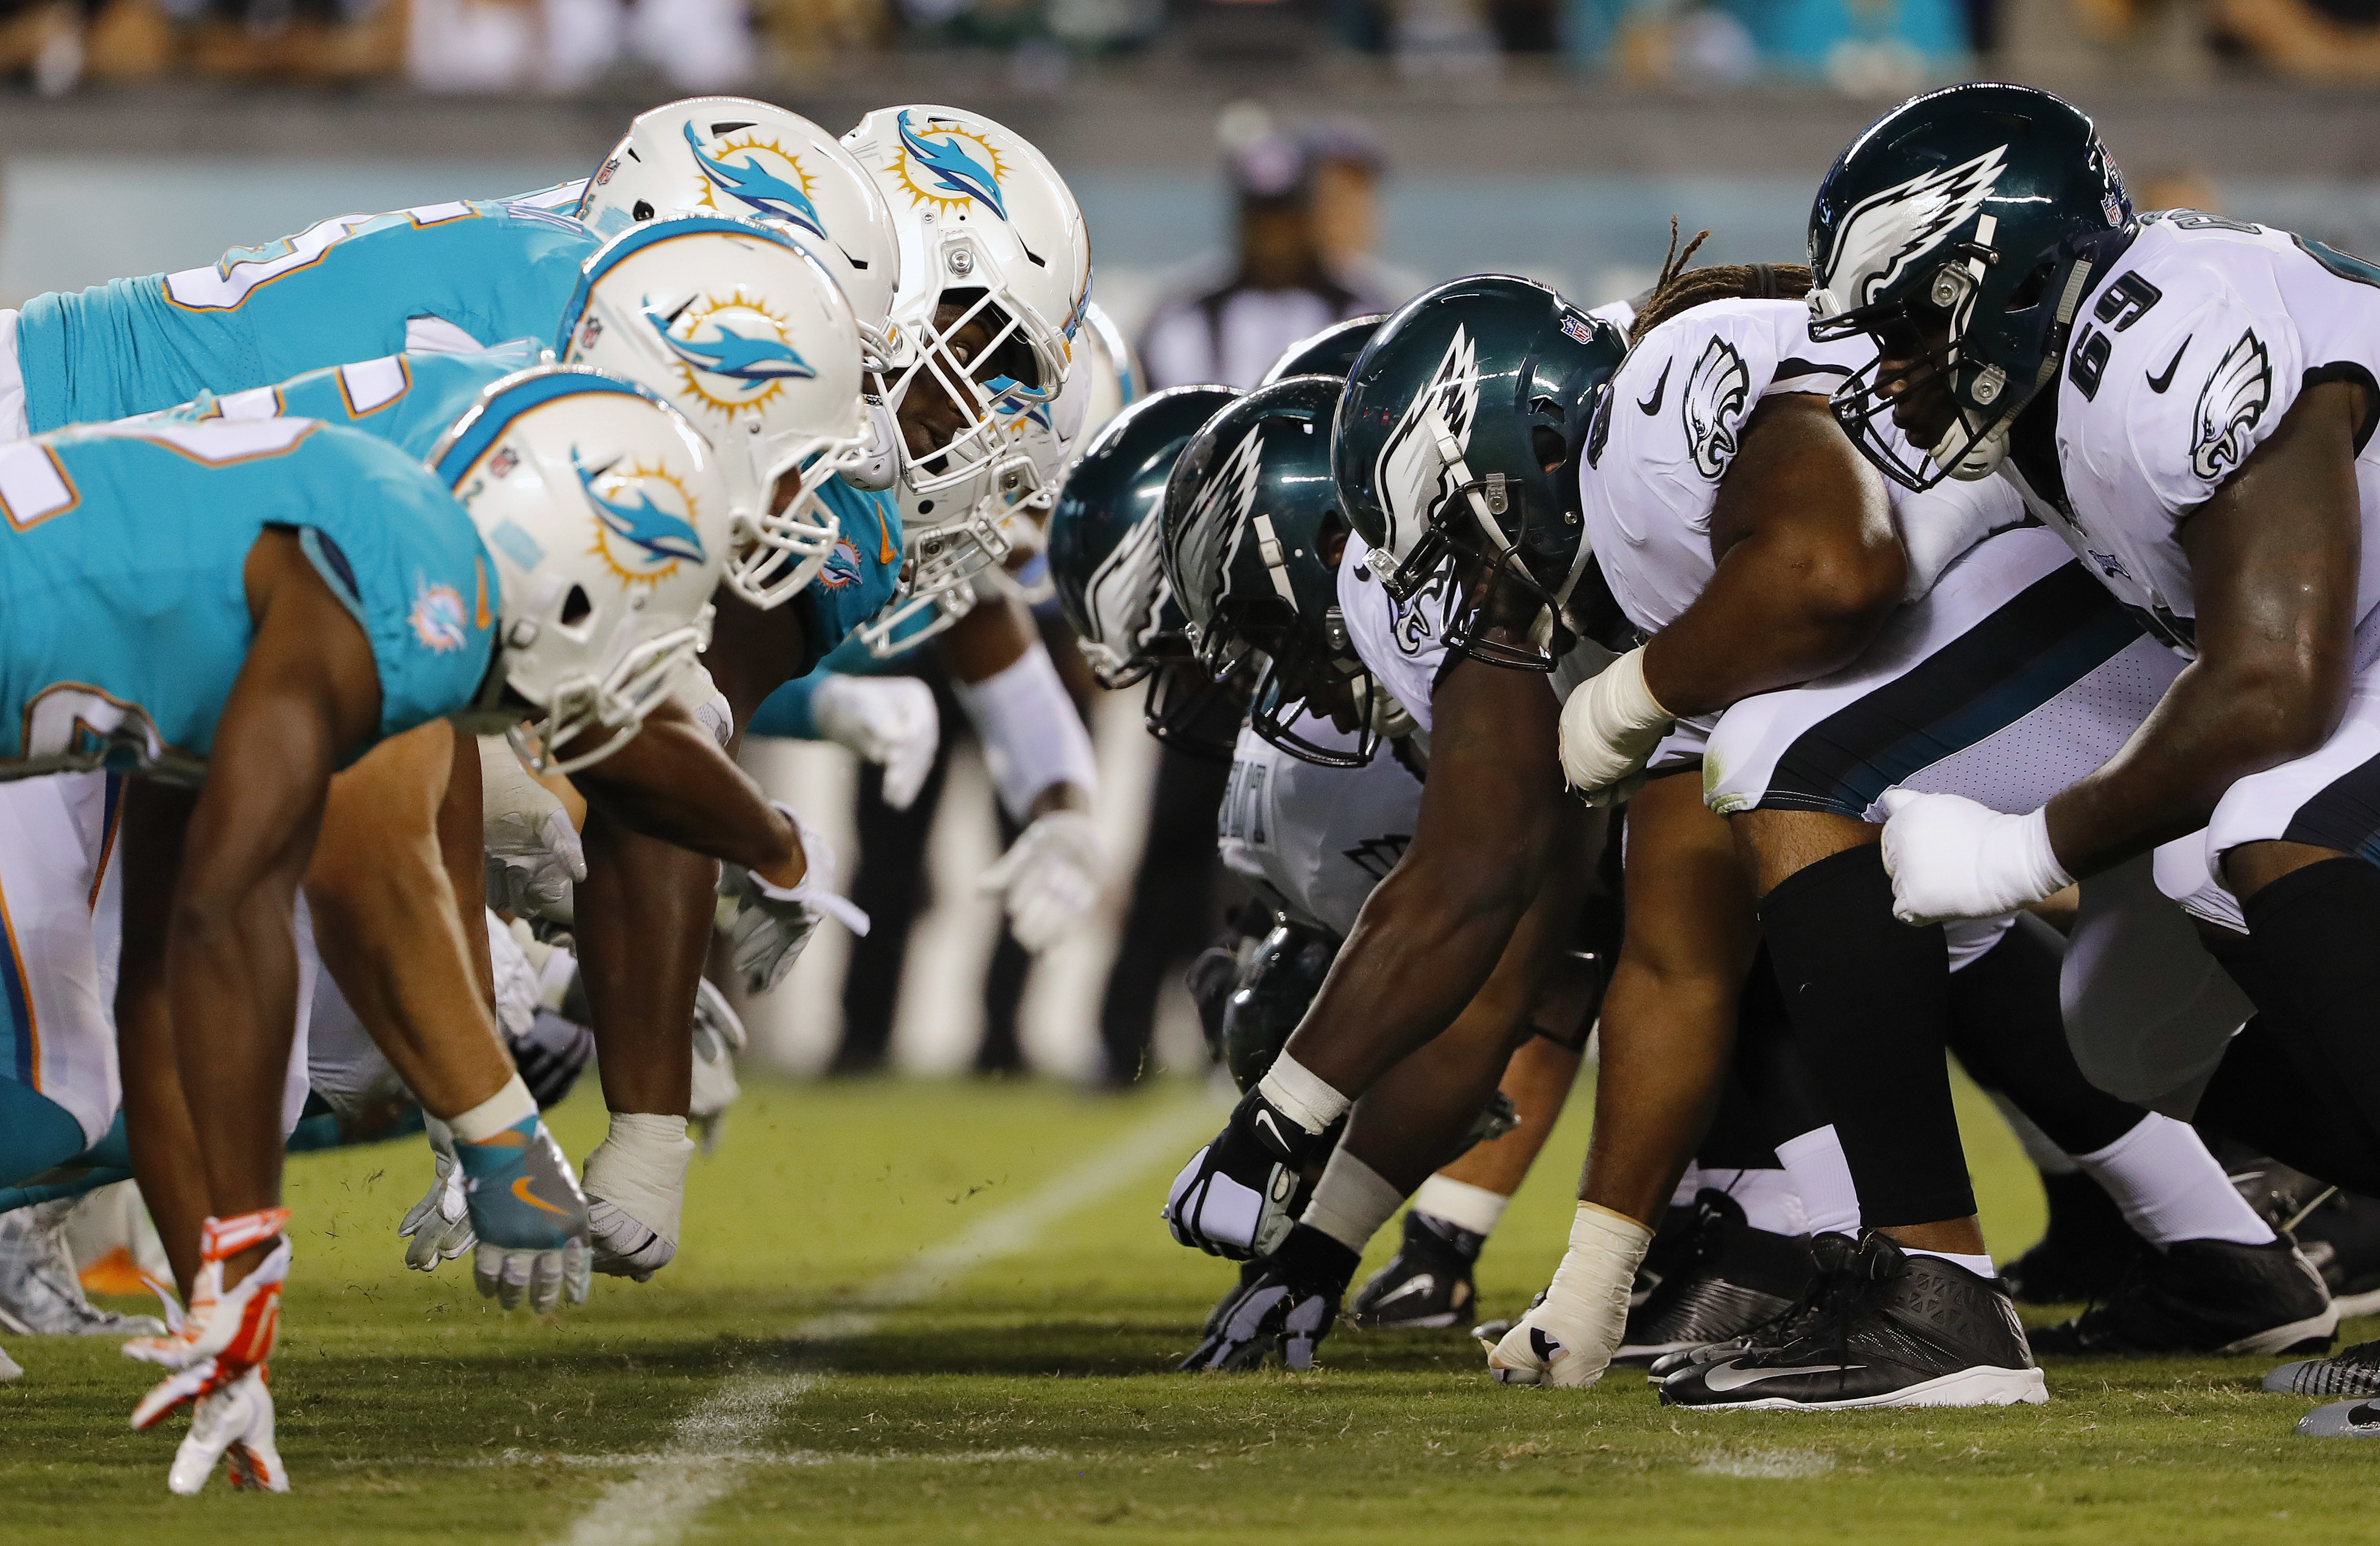 Philadelphia Eagles At Miami Dolphins How To Watch Live